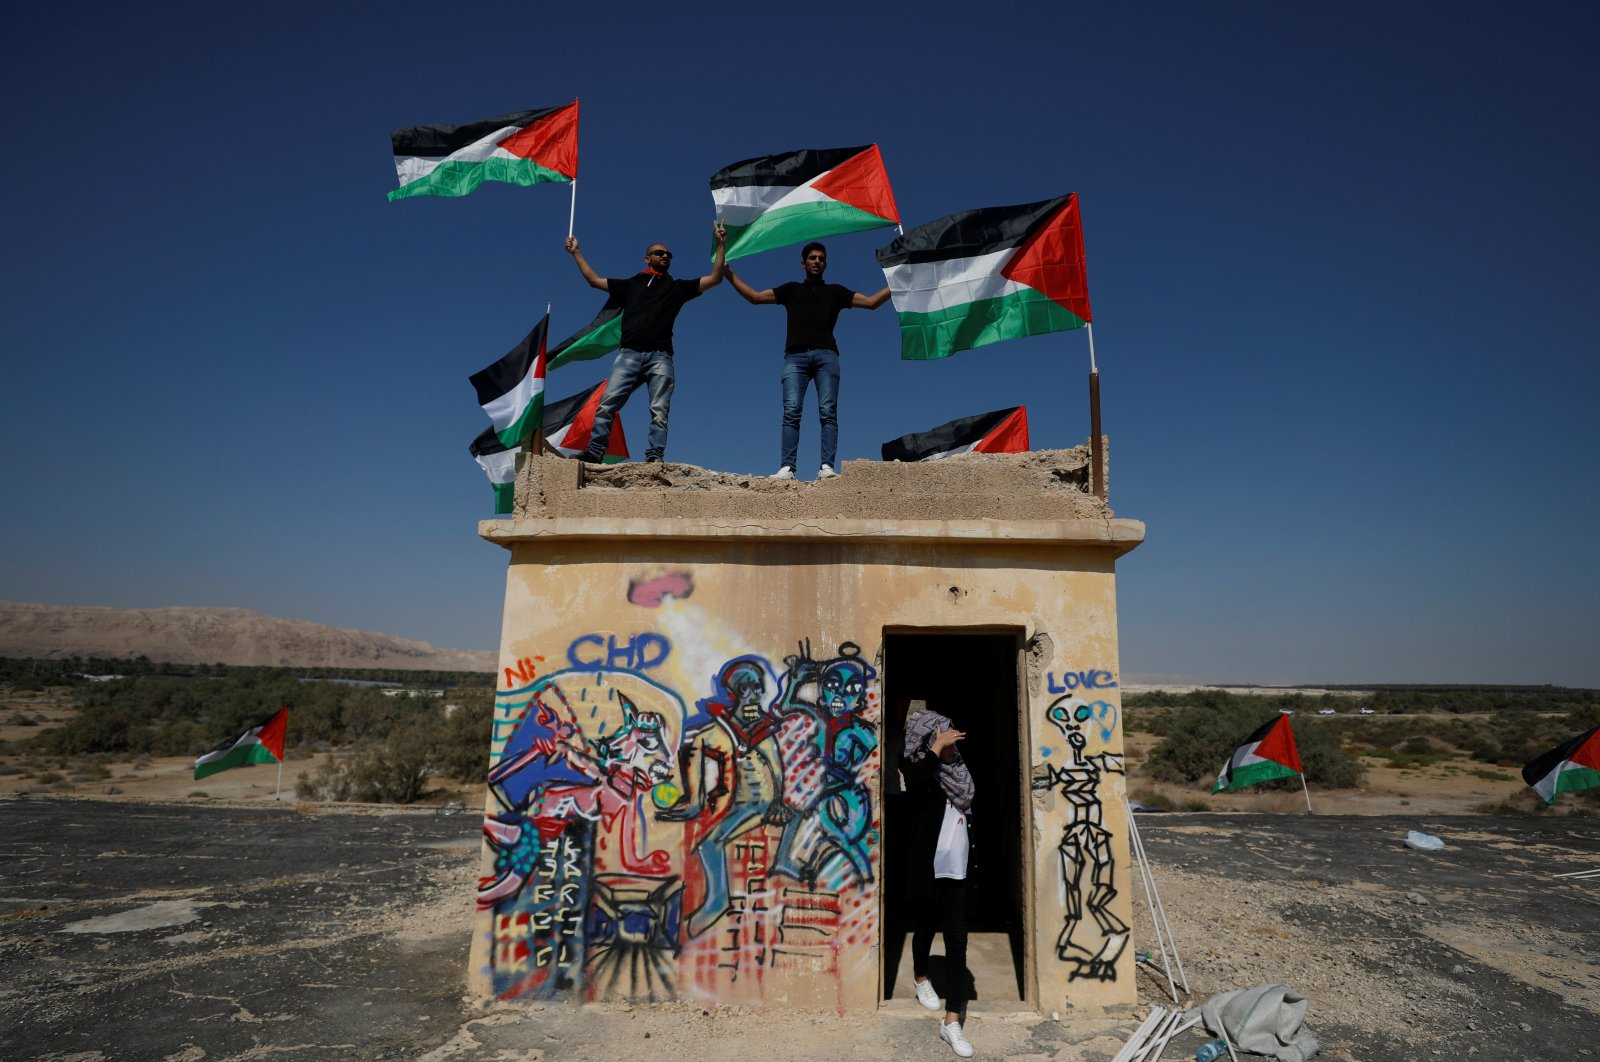 Demonstrators hold Palestinian flags during a protest against illegal settlements near the Dead Sea in the Israeli-occupied West Bank, Sept. 28, 2019. (Reuters Photo)